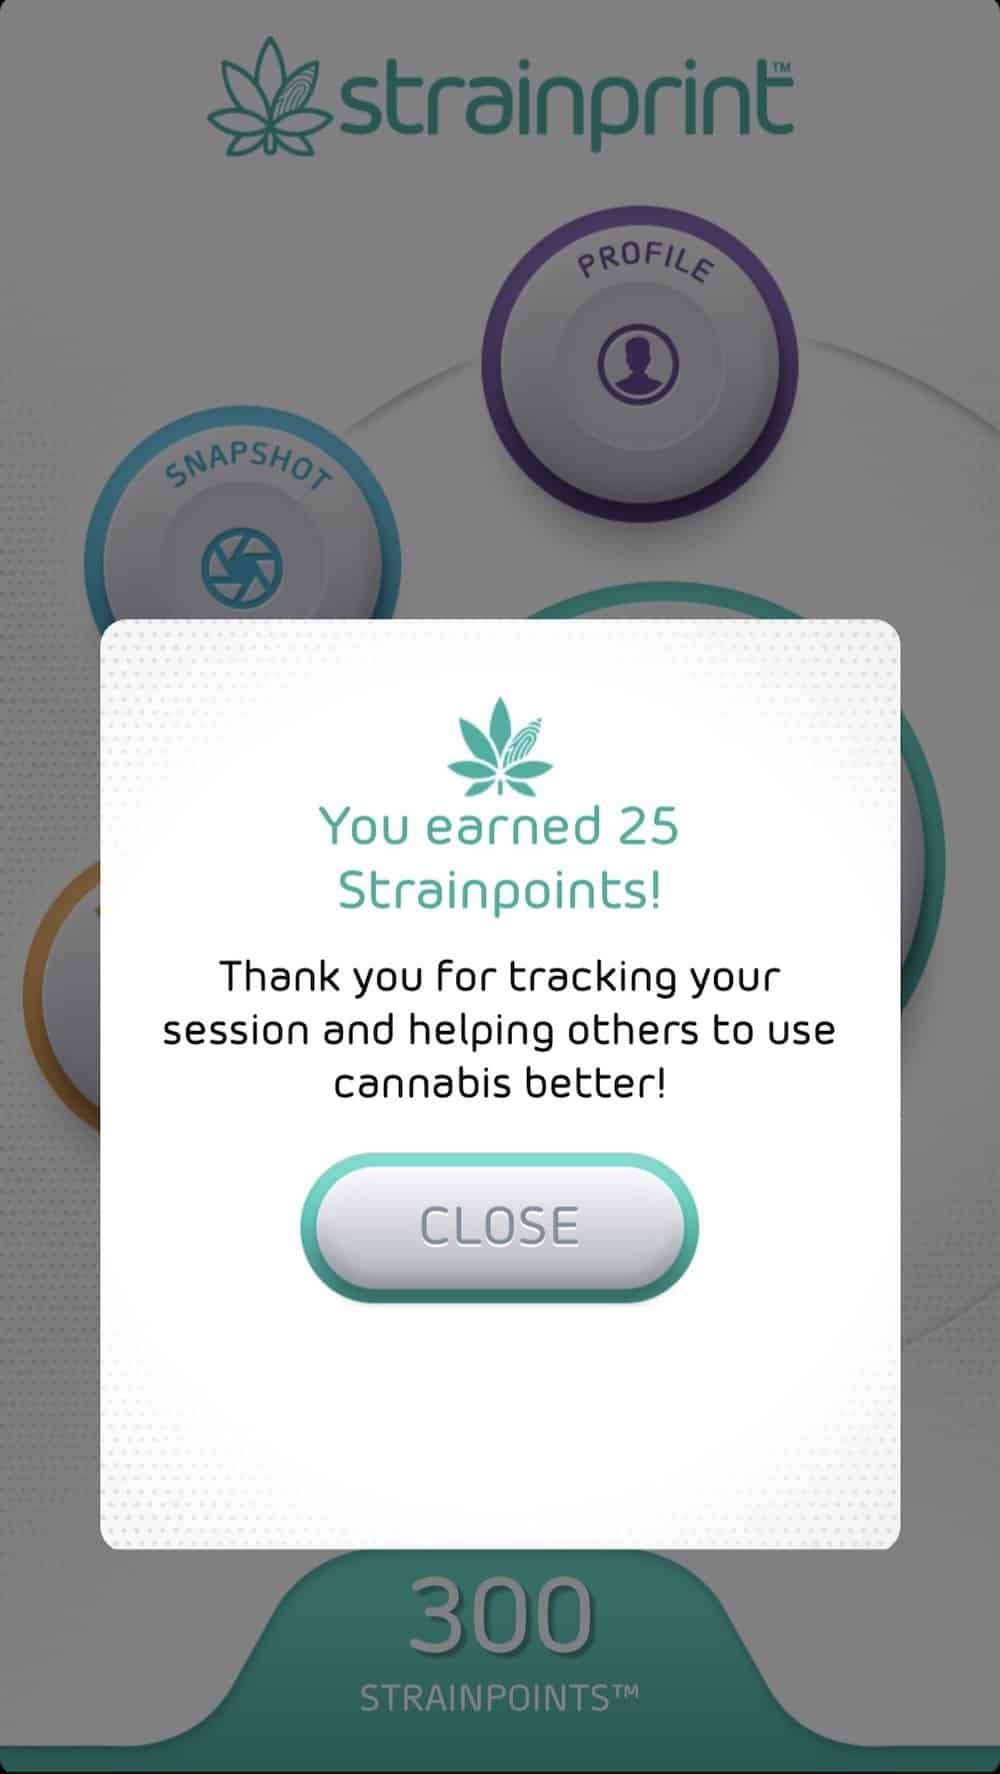 Strainprint: The App that Can Actually Help You Find Your Perfect Strain